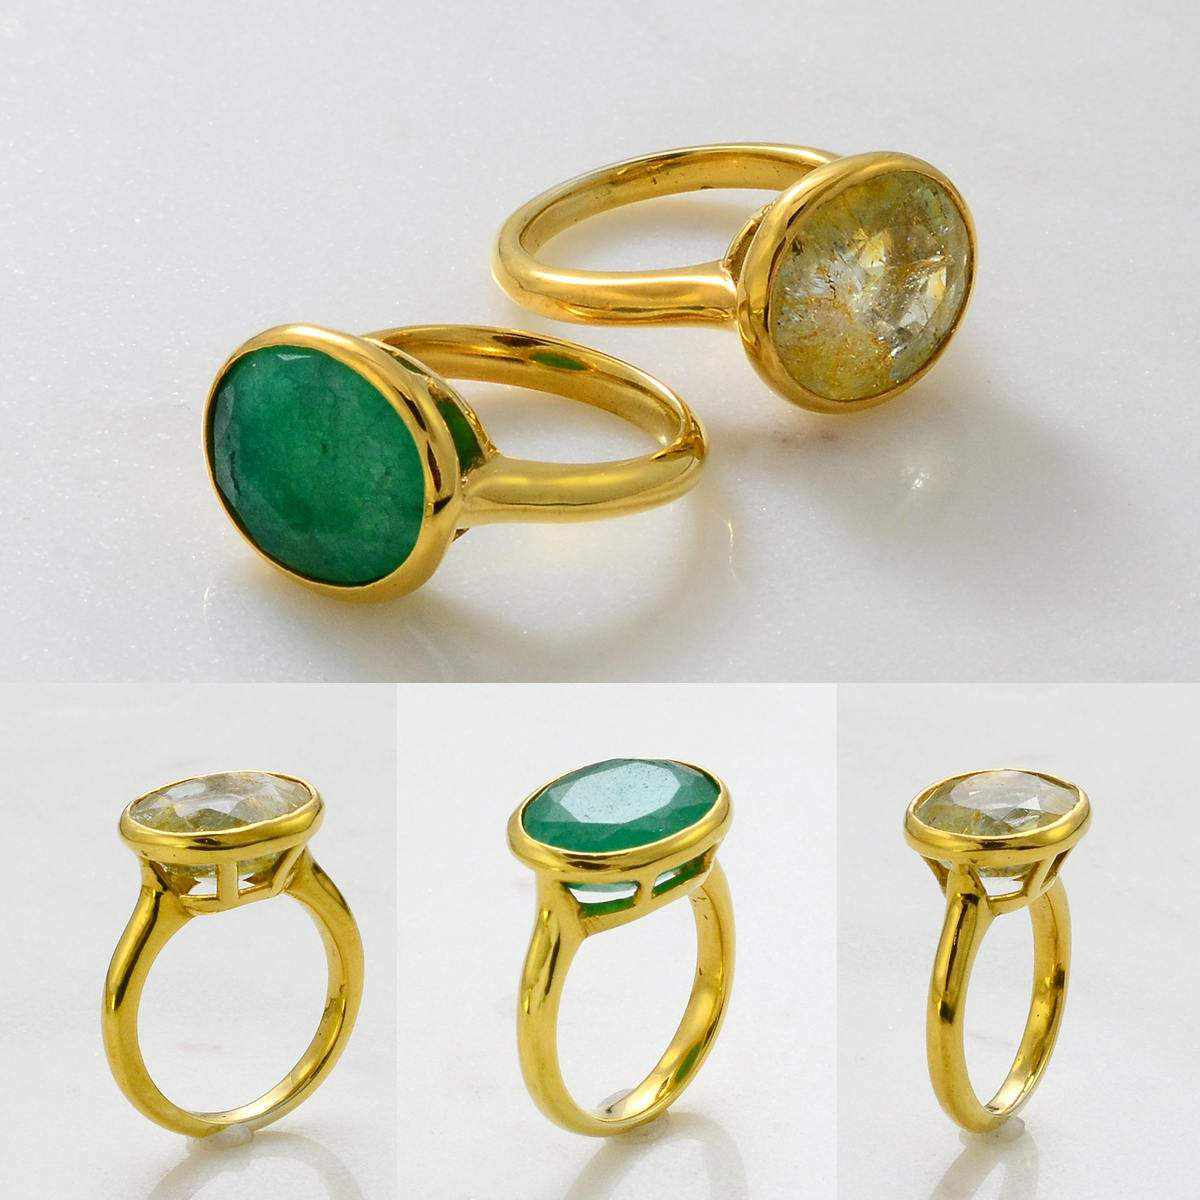 Gemstone ring - Gems Ring - Emerald Ring - Sapphire Gemstone Ring - Stackable Ring - Gold Ring - Oval Ring - Gemstone Ring - Set of 2 Rings